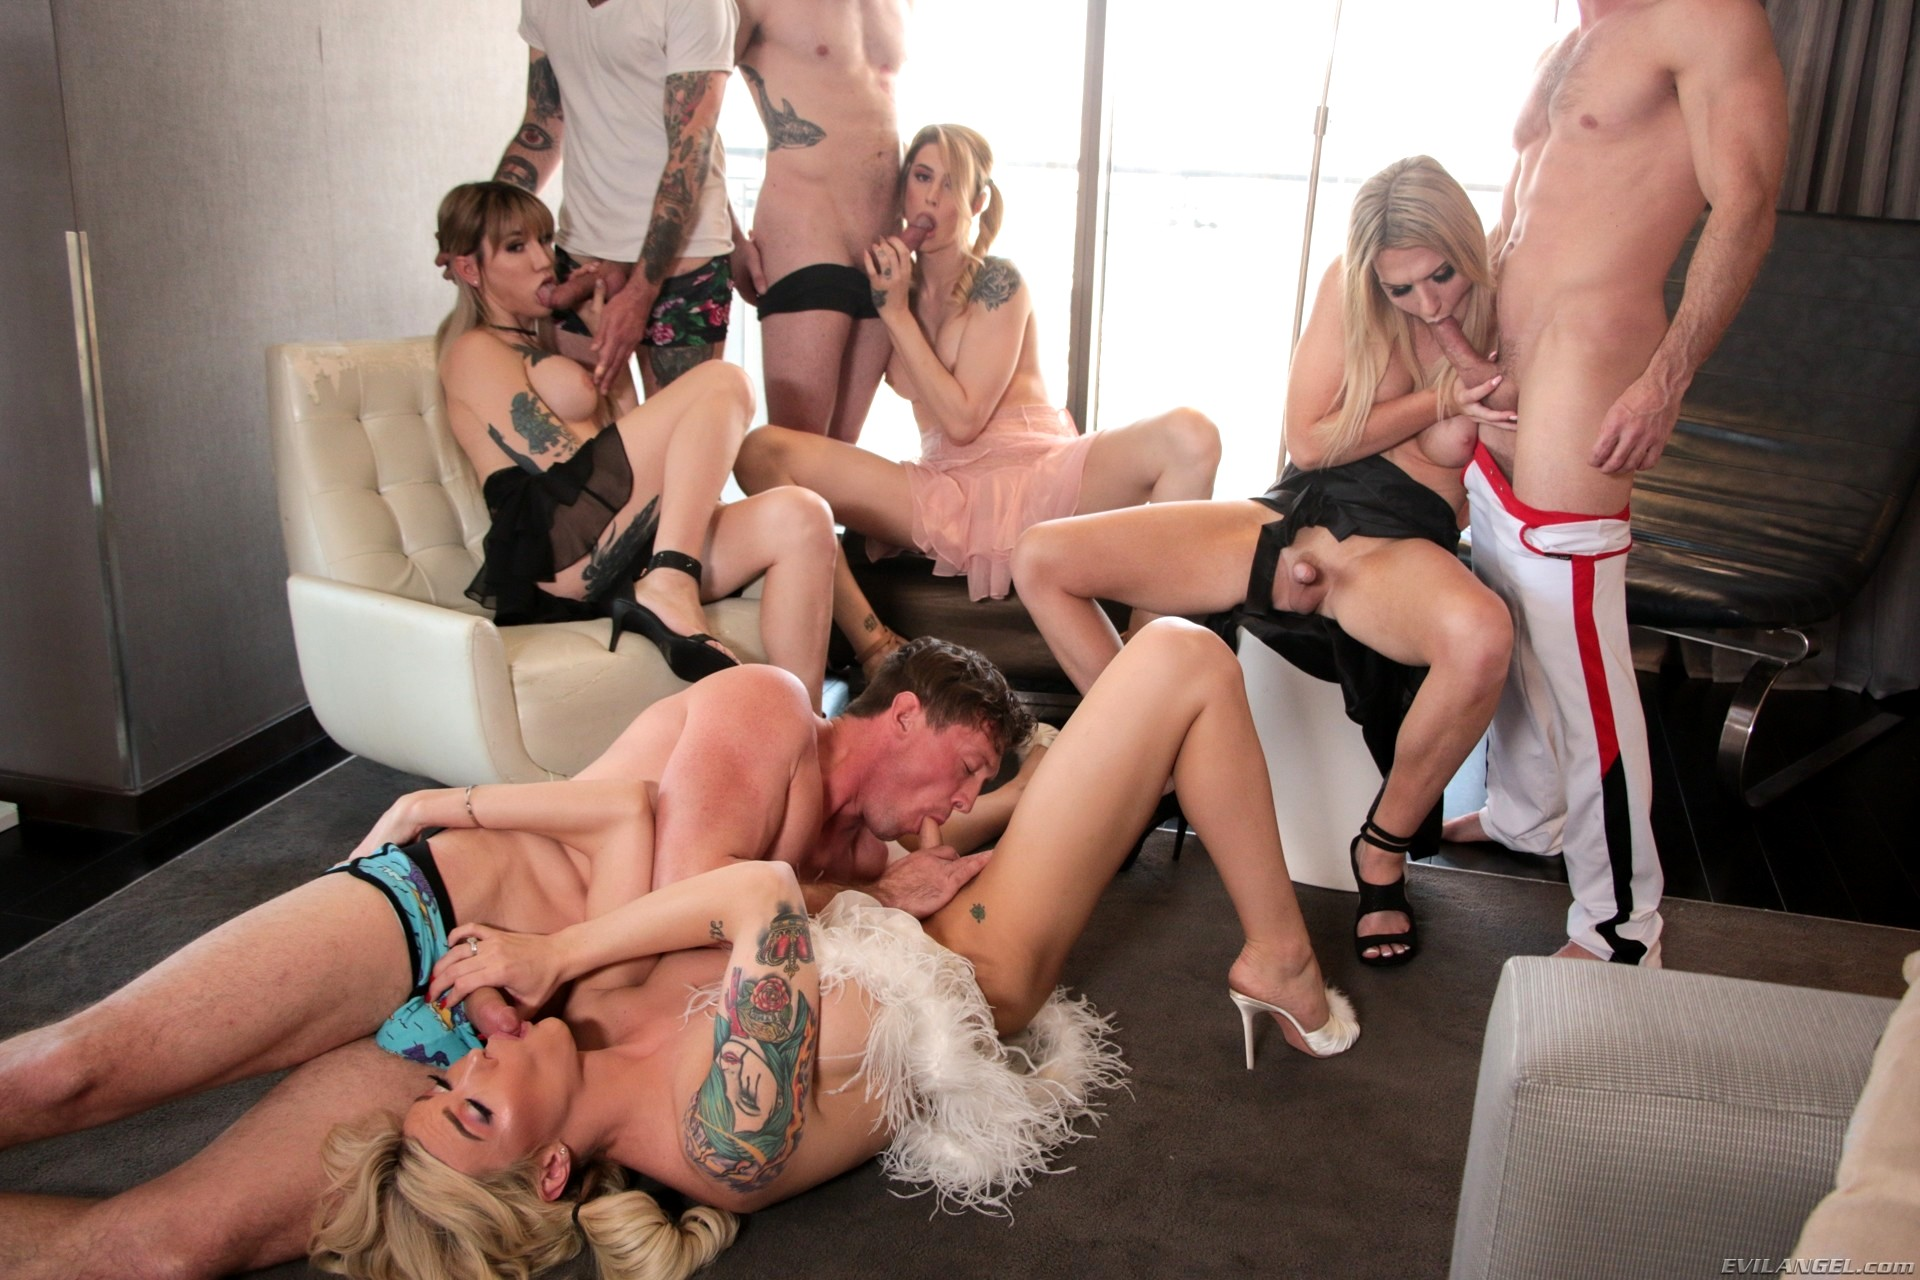 Shemale Orgy Images